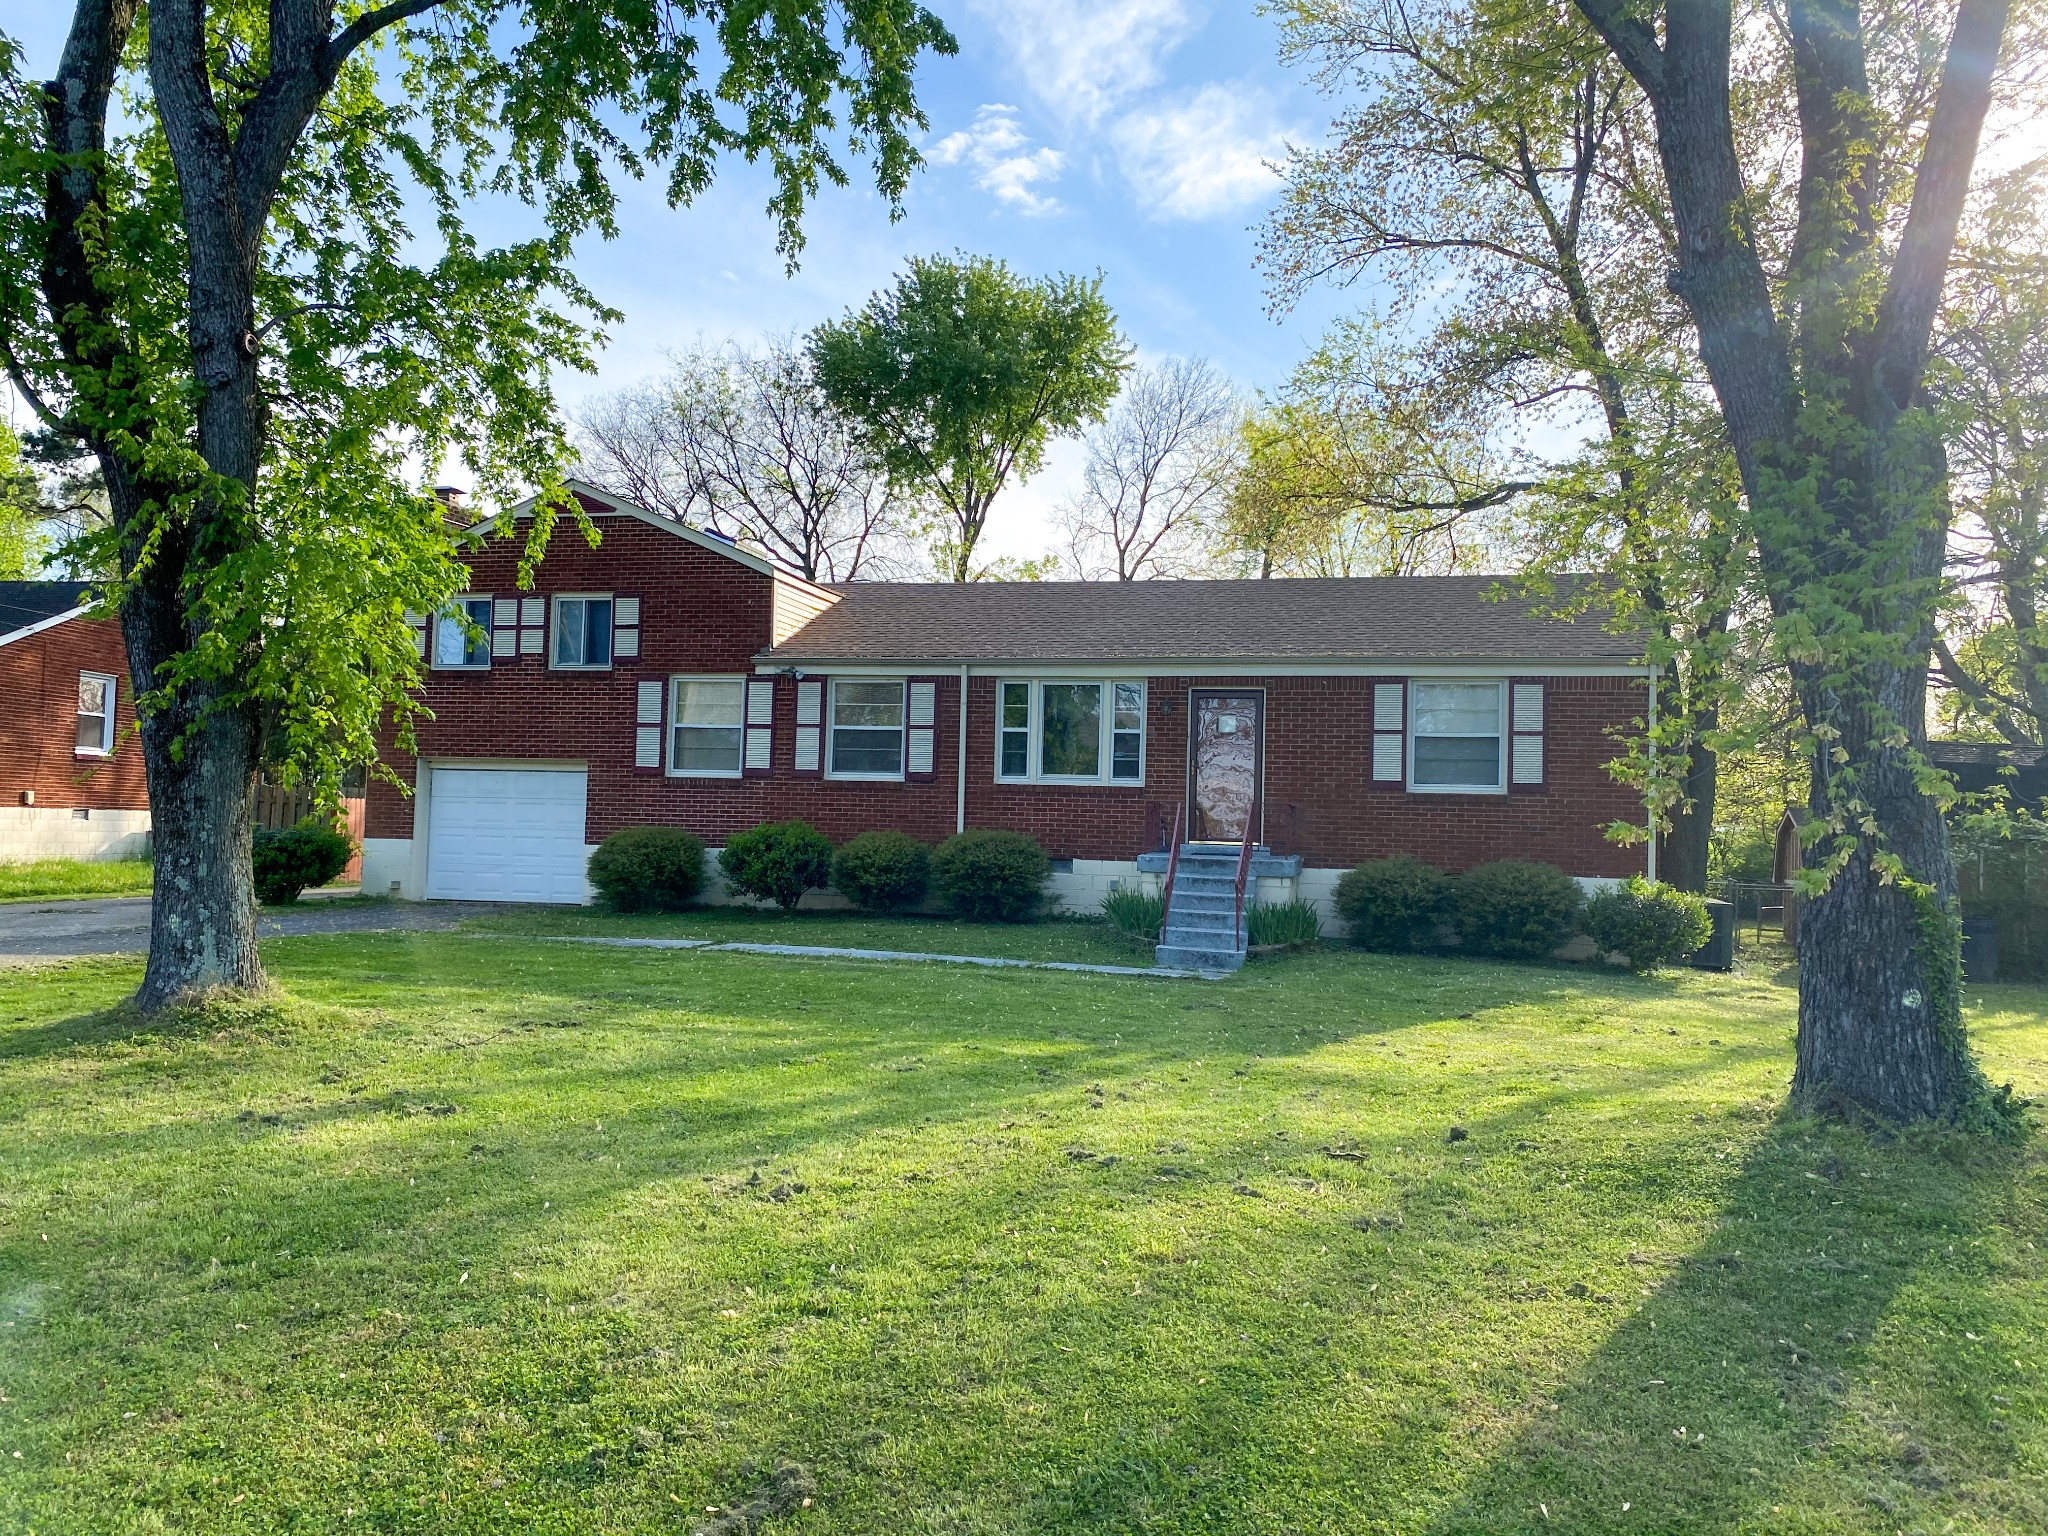 R10 zoning. Full brick house with large yard. Four bedrooms, 2.5 baths. Roof replaced 2019, fresh paint. One car garage and 3 car carport.